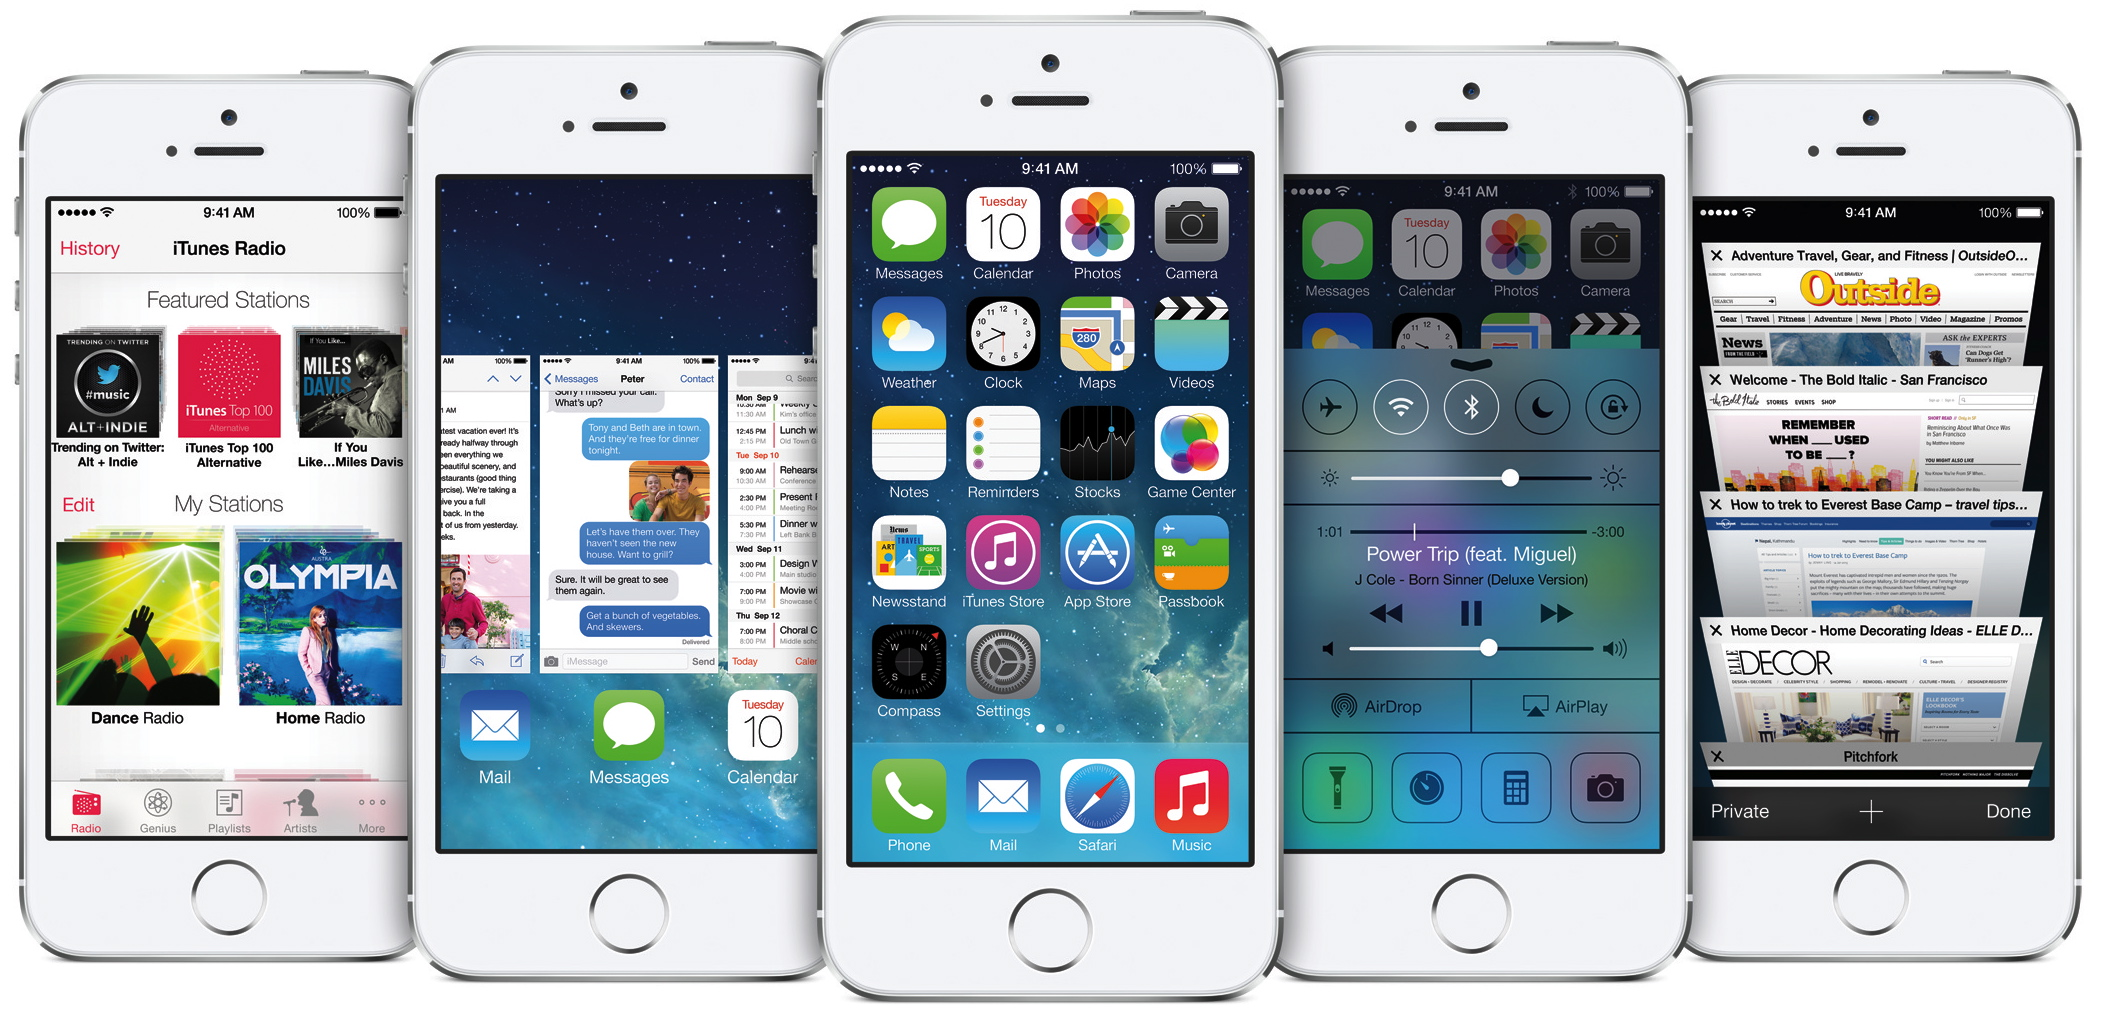 Ios 7 Iphone Wallpaper: IOS 7 With Completely Redesigned User Interface & Great